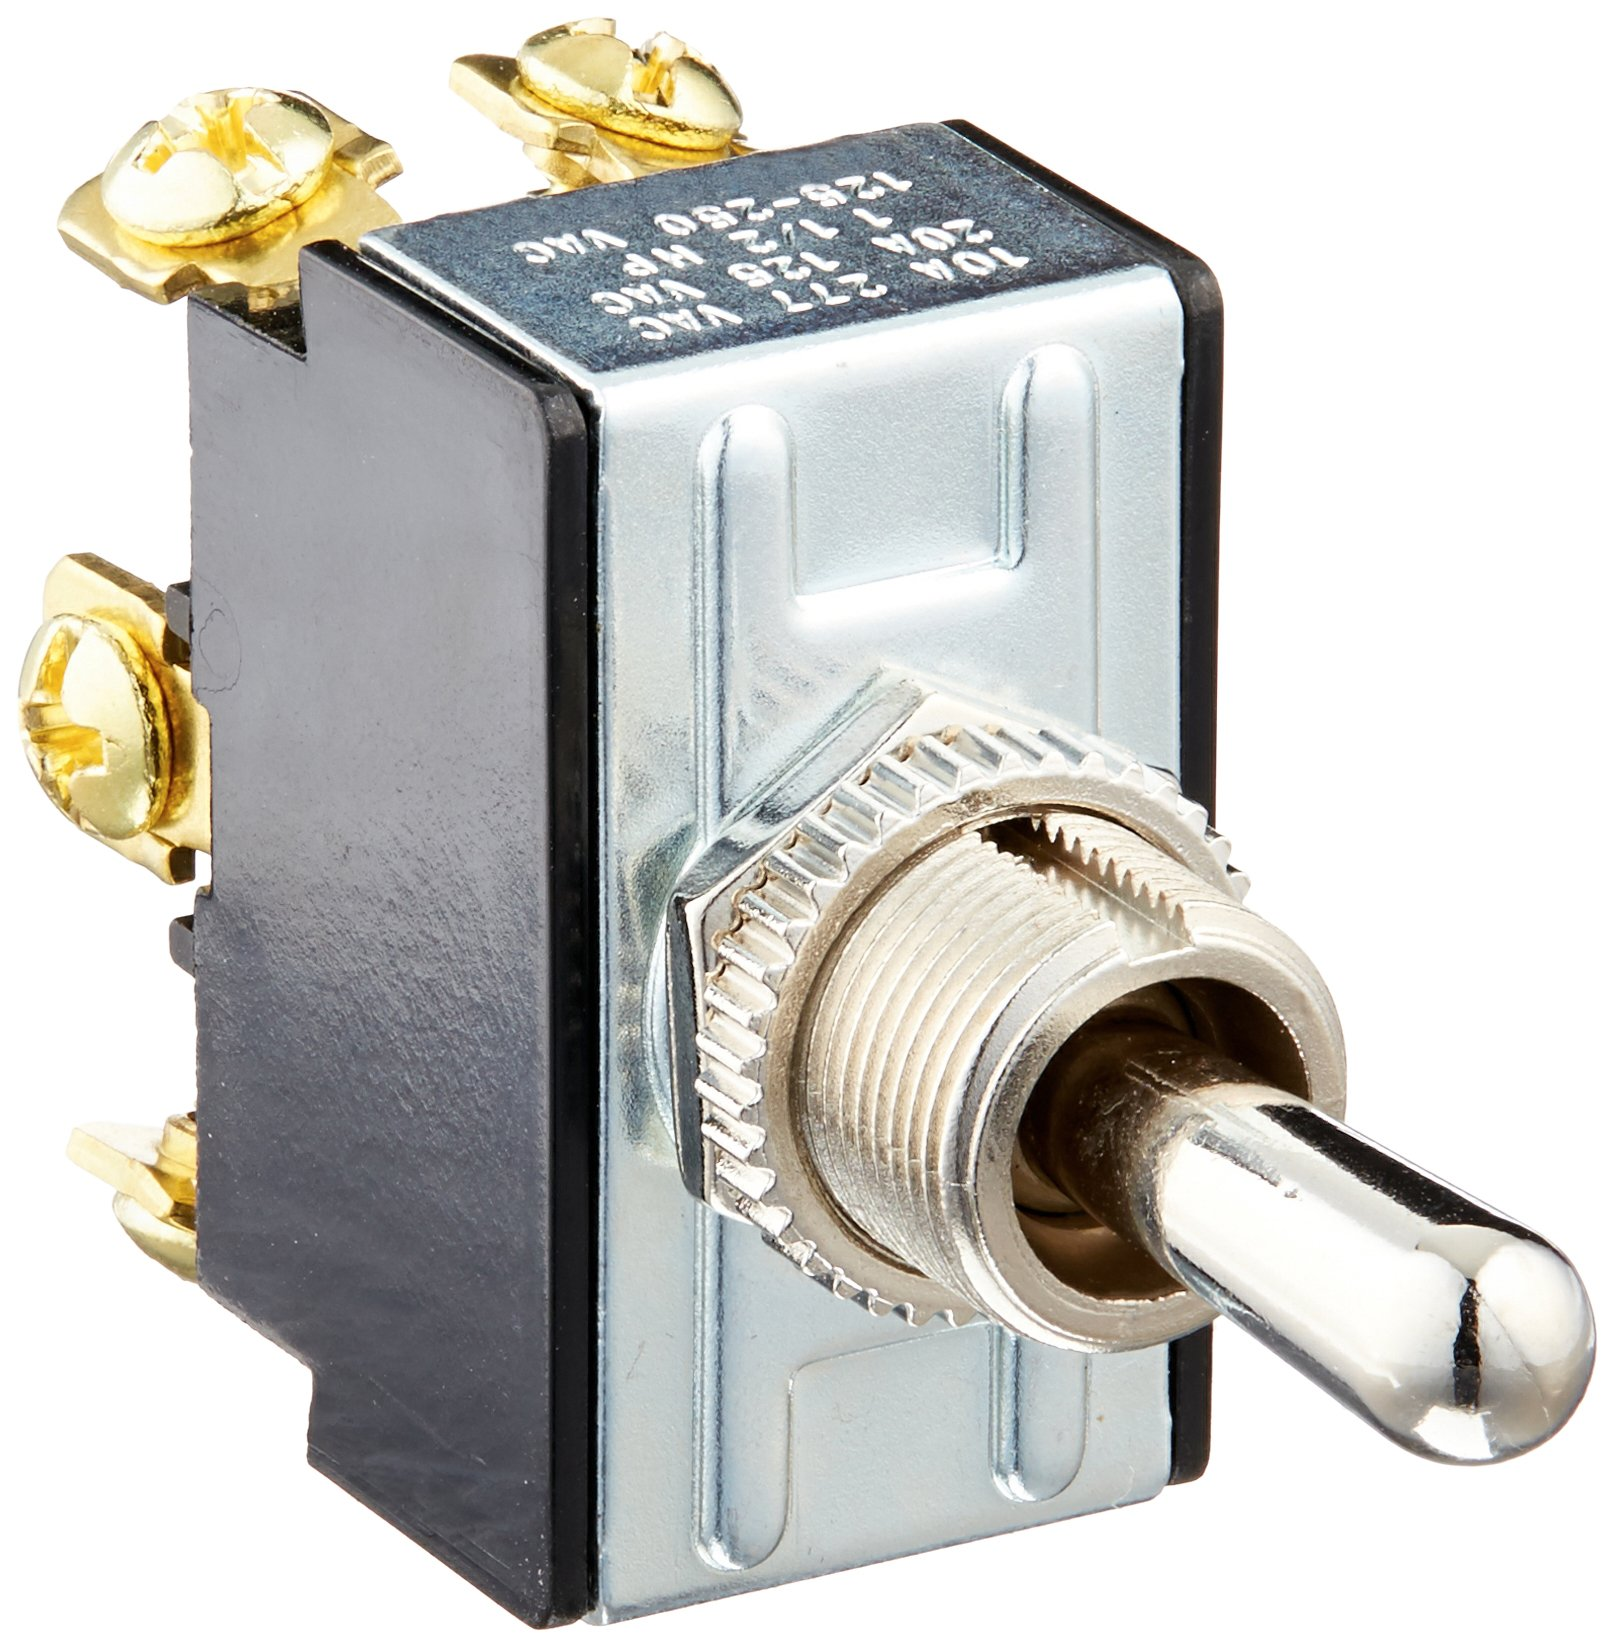 Amazon.com: Morris 70110 Heavy Duty Toggle Switch, DPDT, On-Off-On ...